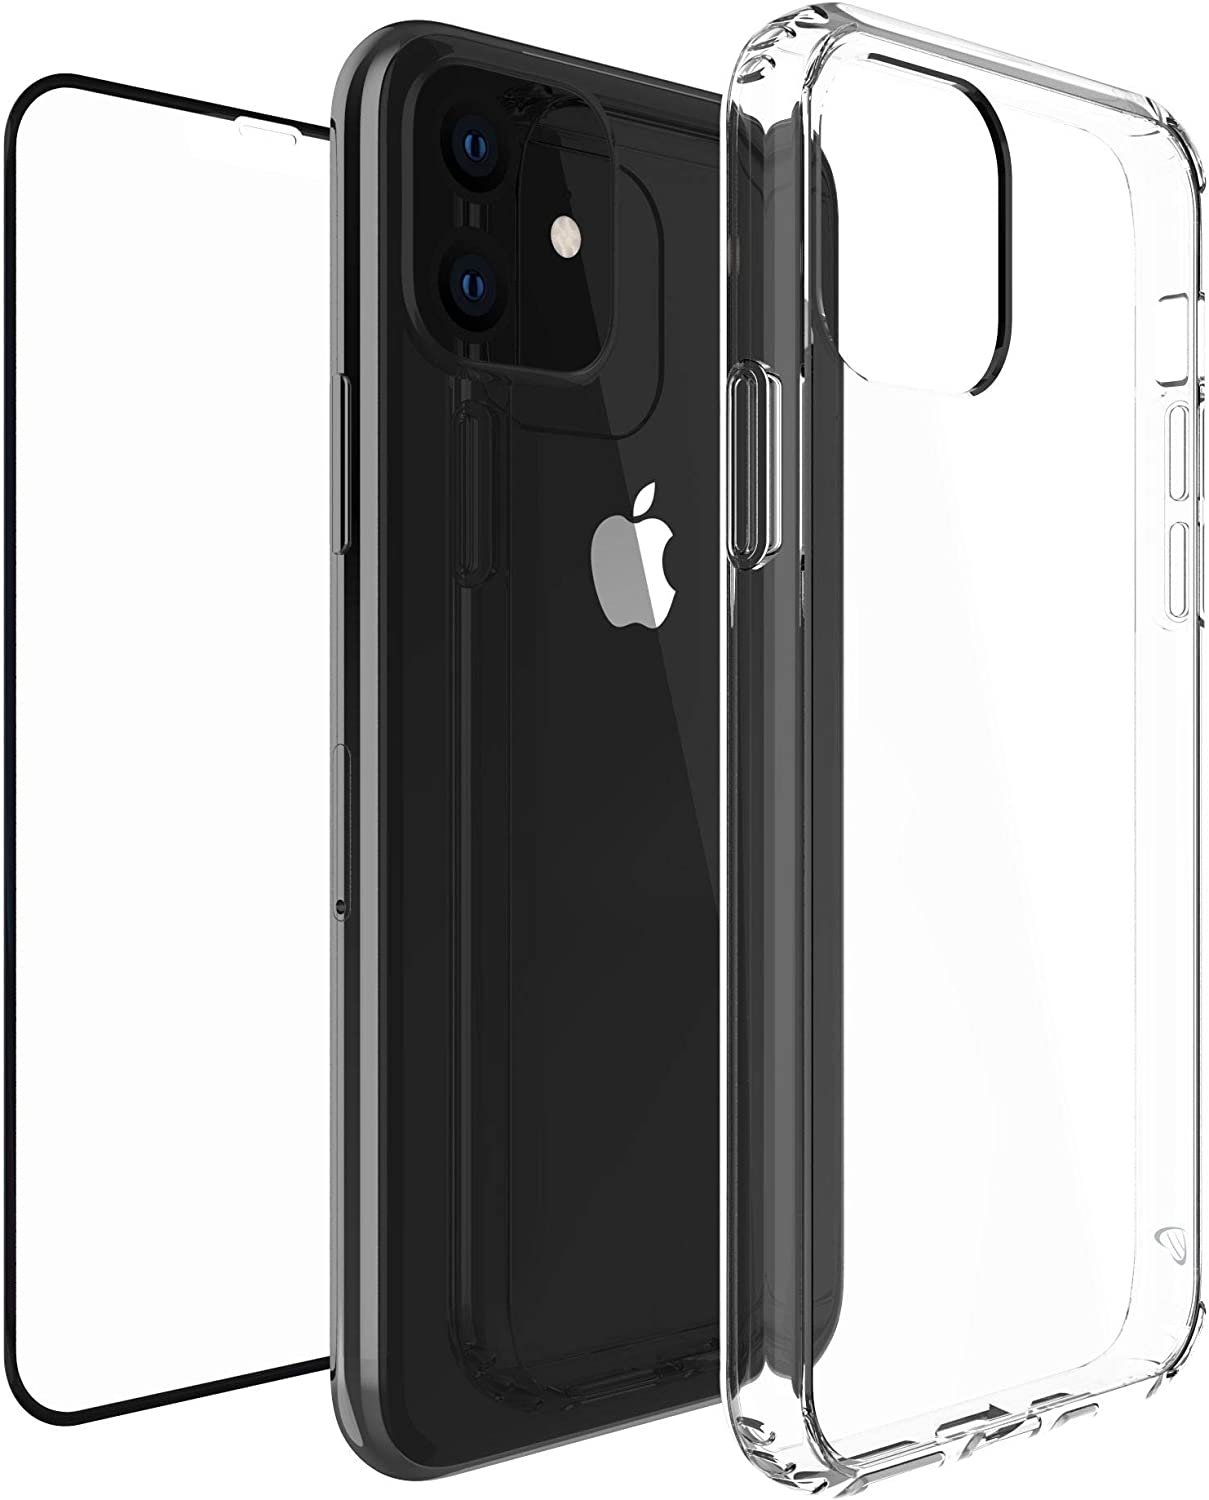 Luvvitt Clear View Case Designed for iPhone 11 + Tempered Glass Screen Protector for Apple iPhone 11 XI 6.1